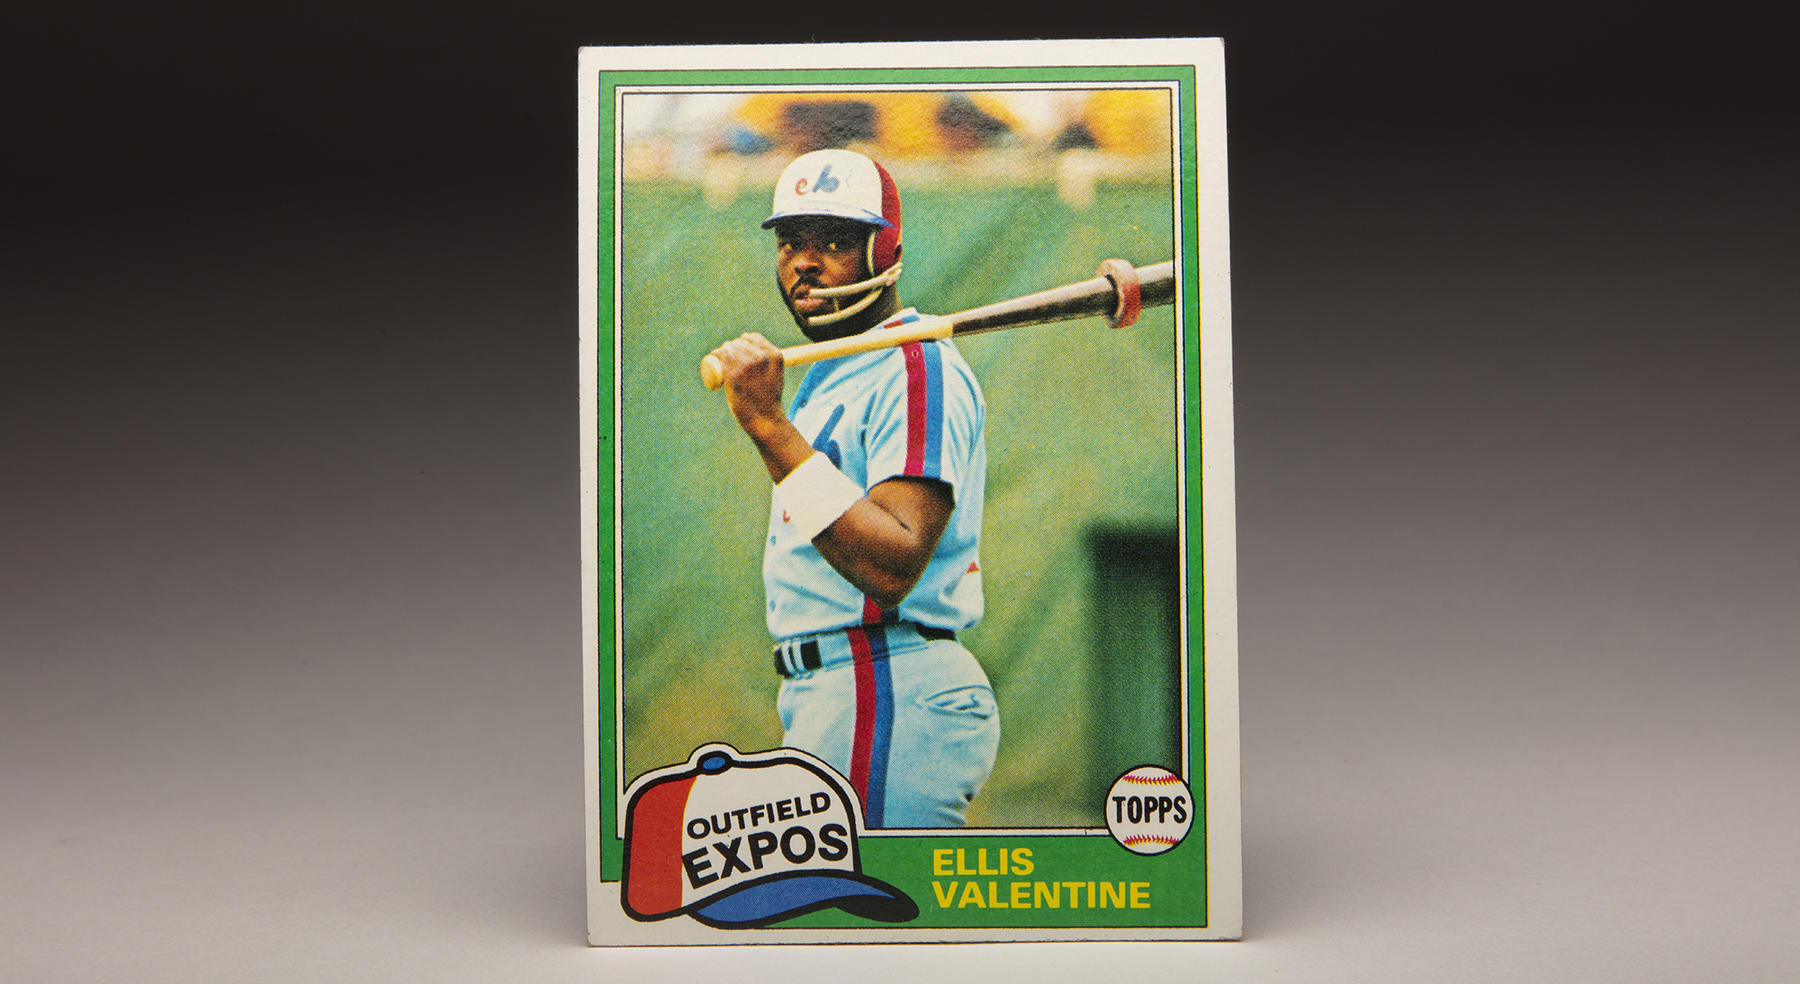 Ellis Valentine's 1981 Topps card featured a photo of the Expos' outfielder with a face guard attached to his batting helmet. Valentine was hit on the face with a pitch early in the 1980 season. (Milo Stewart Jr./National Baseball Hall of Fame and Museum)